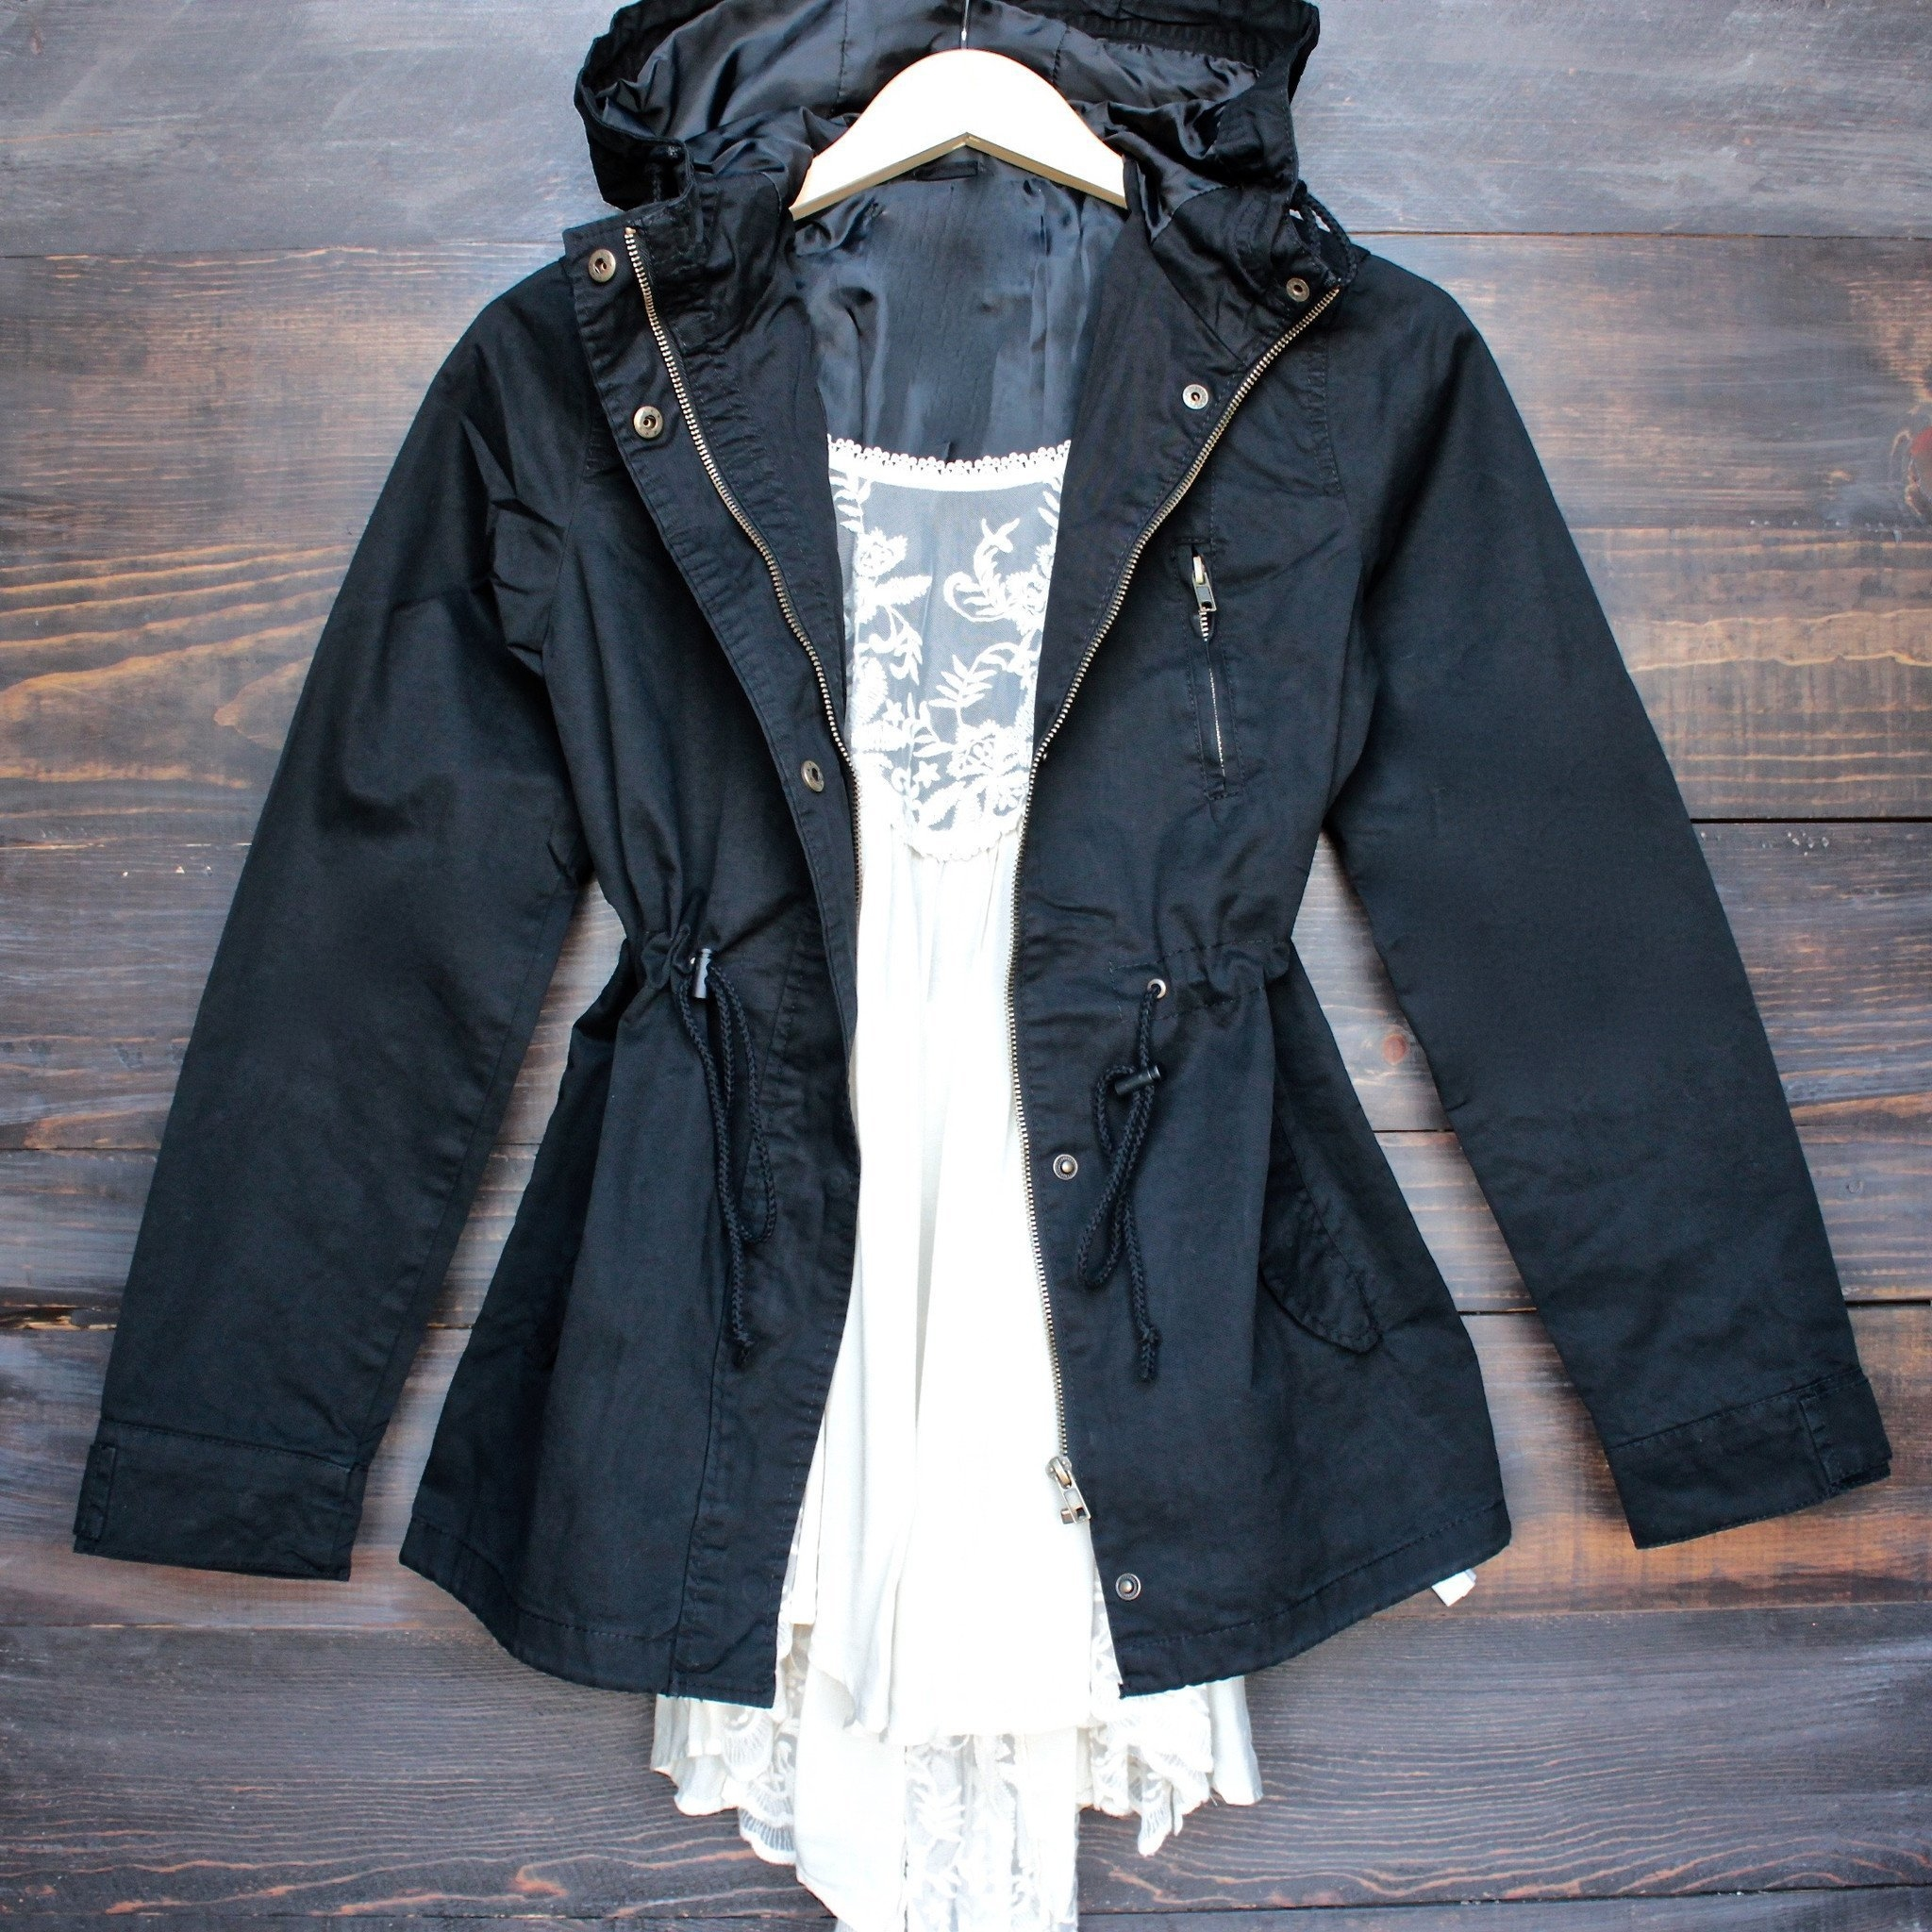 Image of Womens Hooded Utility Parka Jacket with Drawstring Waist in Black